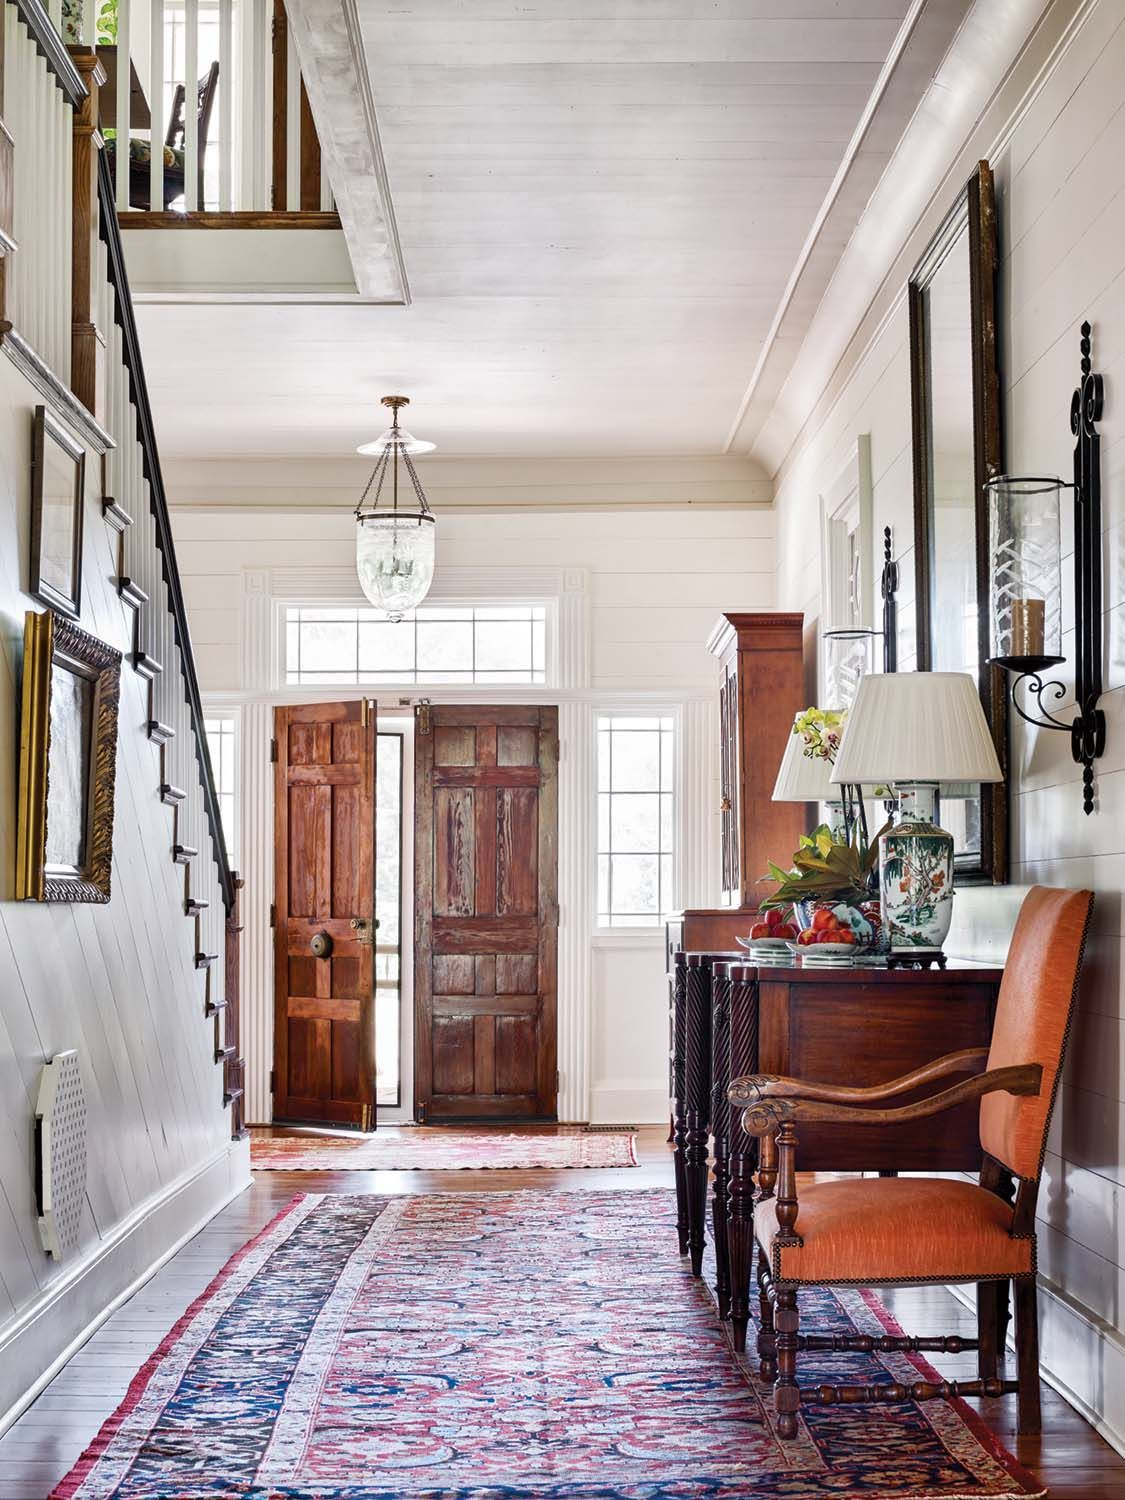 Light and Bright Foyer historichomes (With images